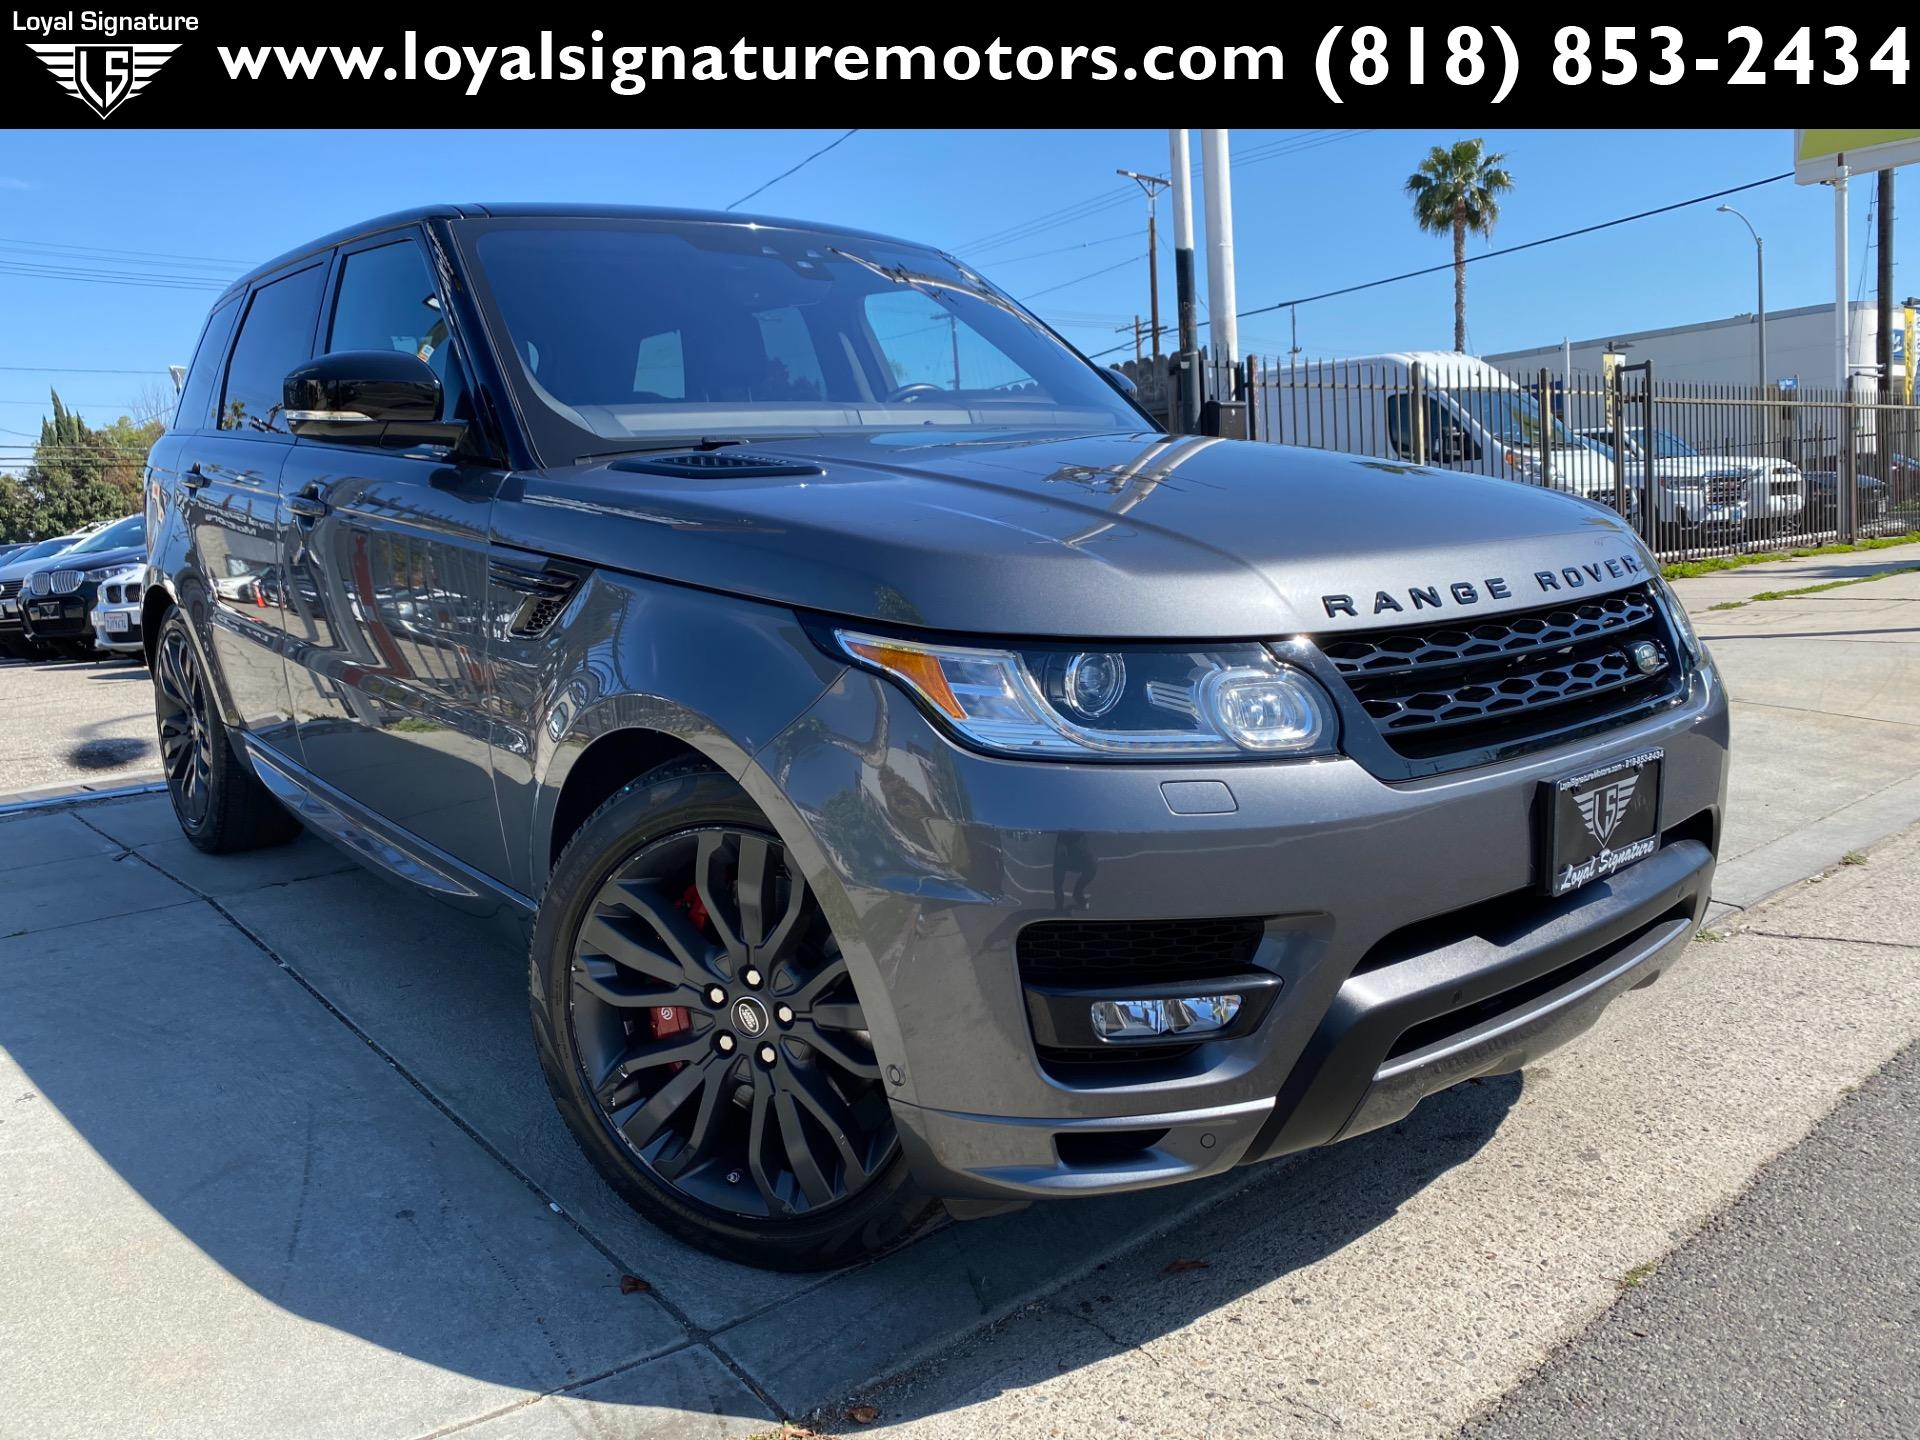 Used 2017 Land Rover Range Rover Sport HSE Dynamic | Van Nuys, CA